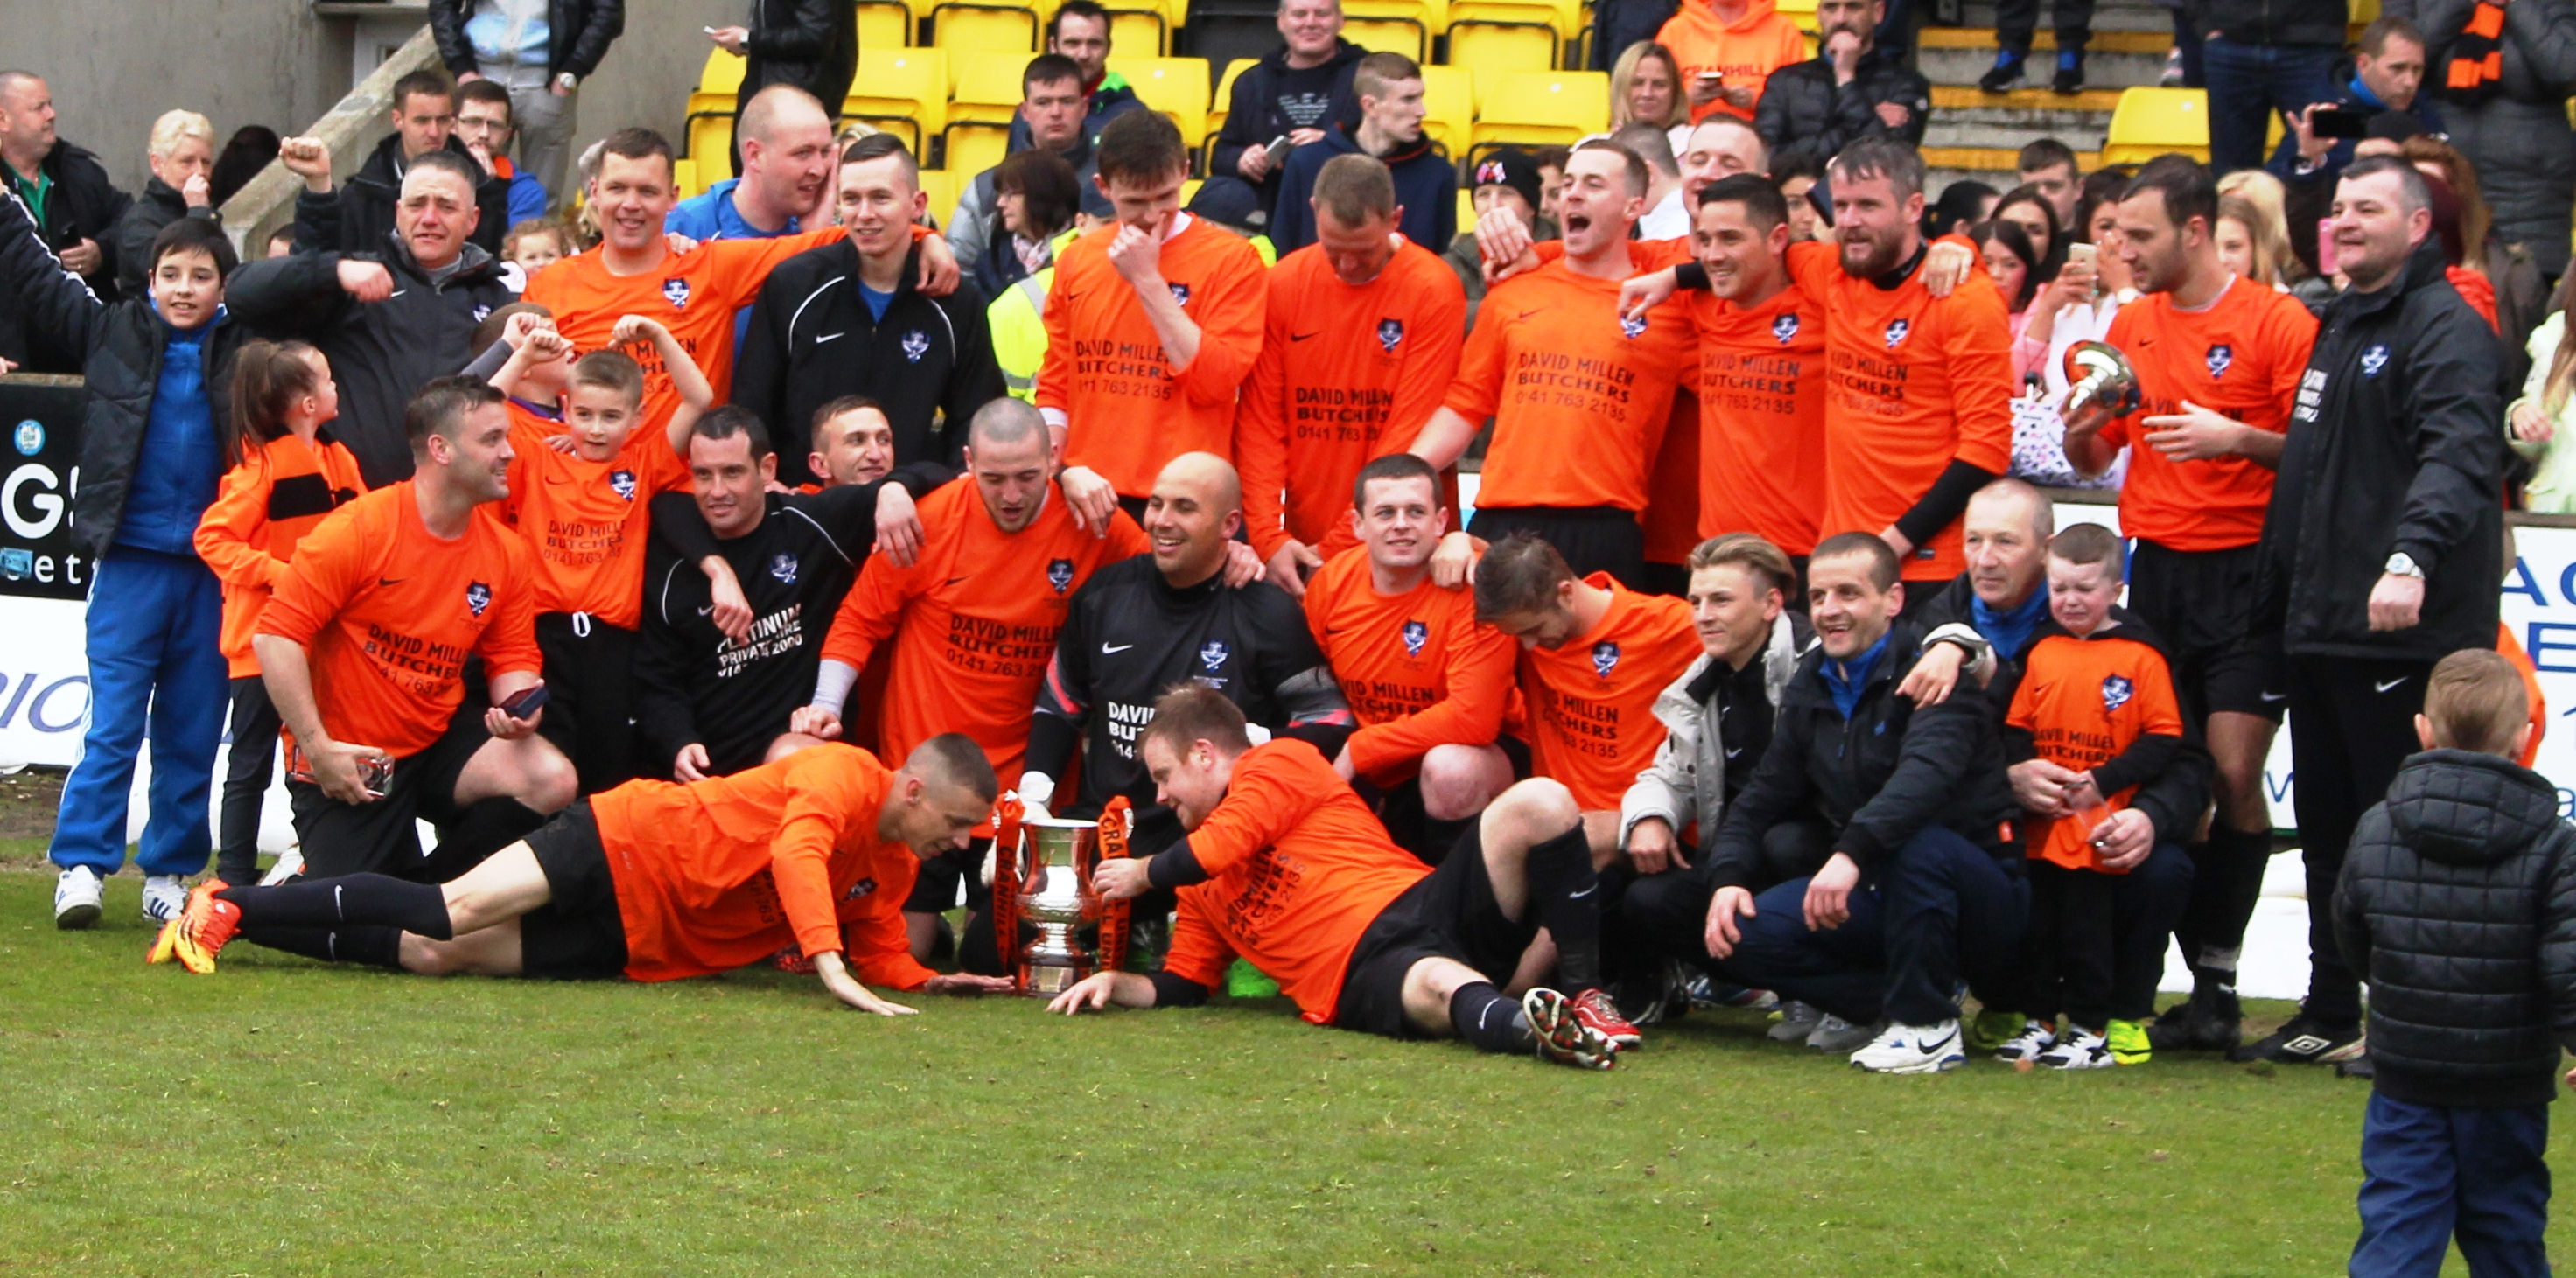 Cranhill United claim Sunday Trophy 2015